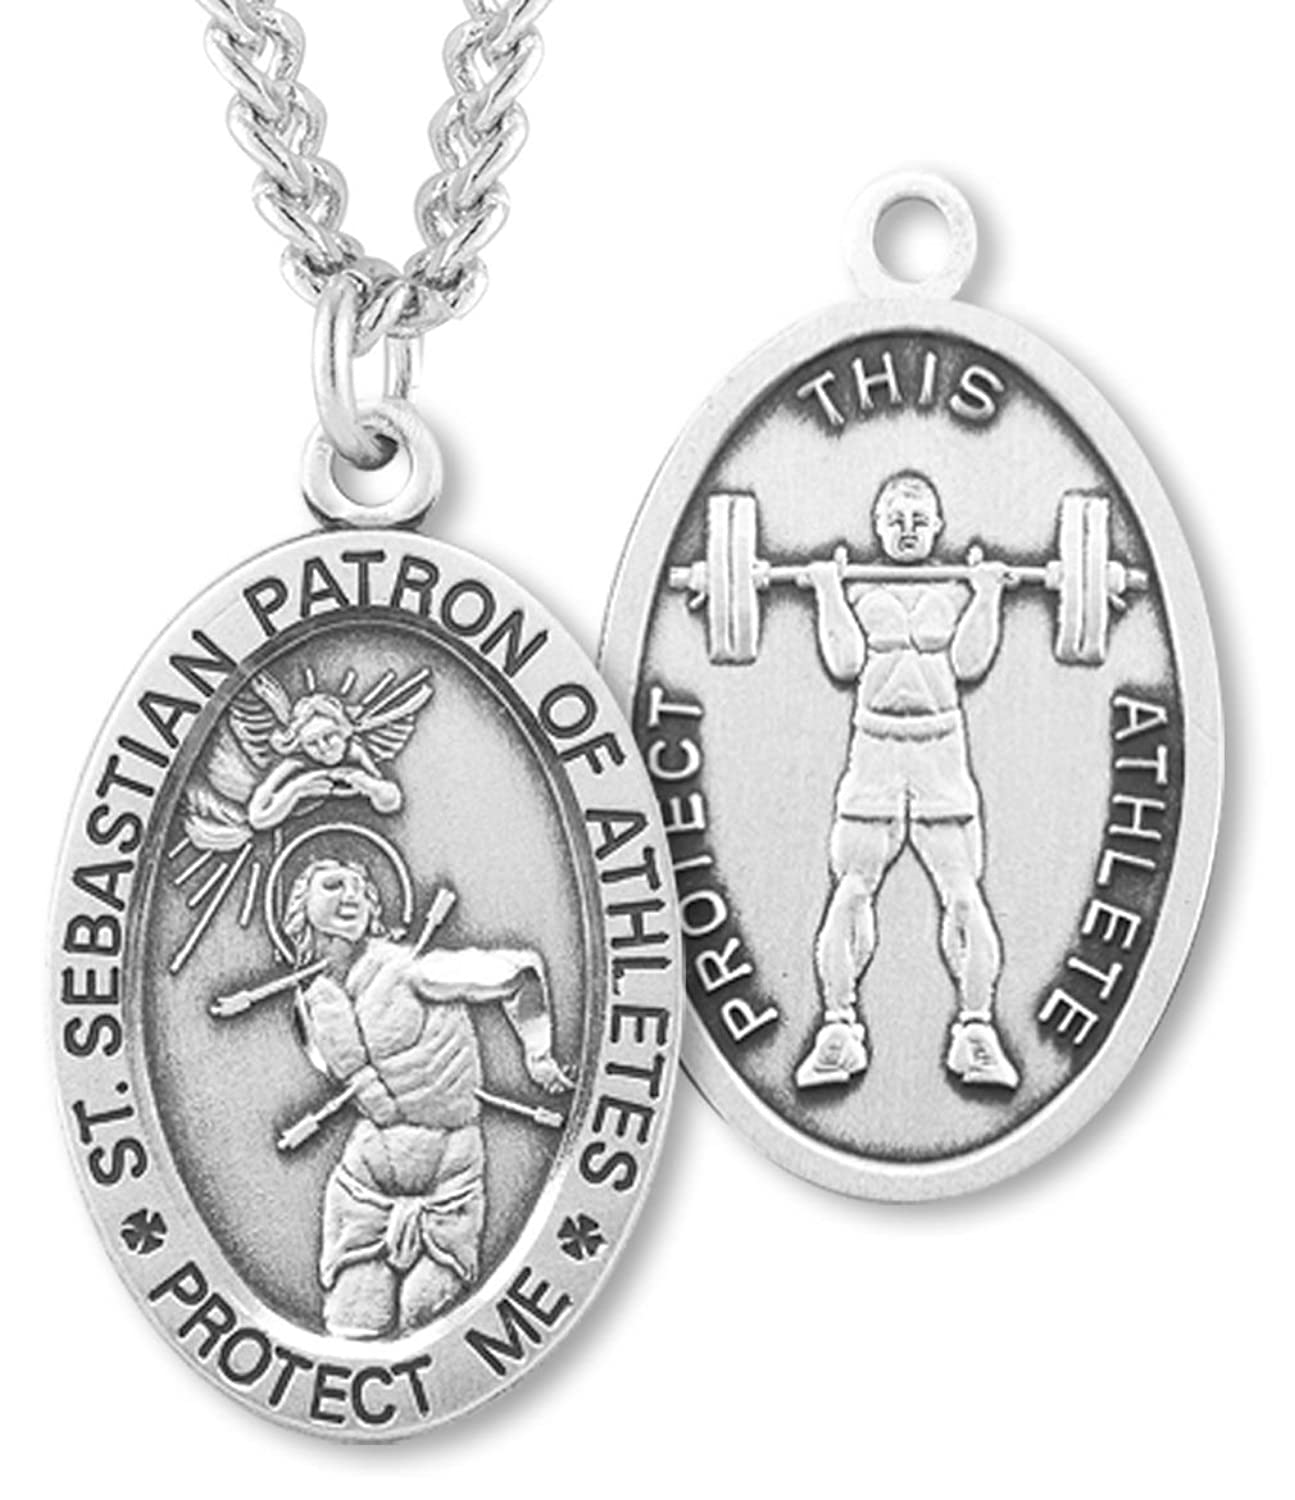 Heartland Men's Sterling Silver Oval Saint Sebastian Weight Lifting Necklace + USA Made + Chain Choice